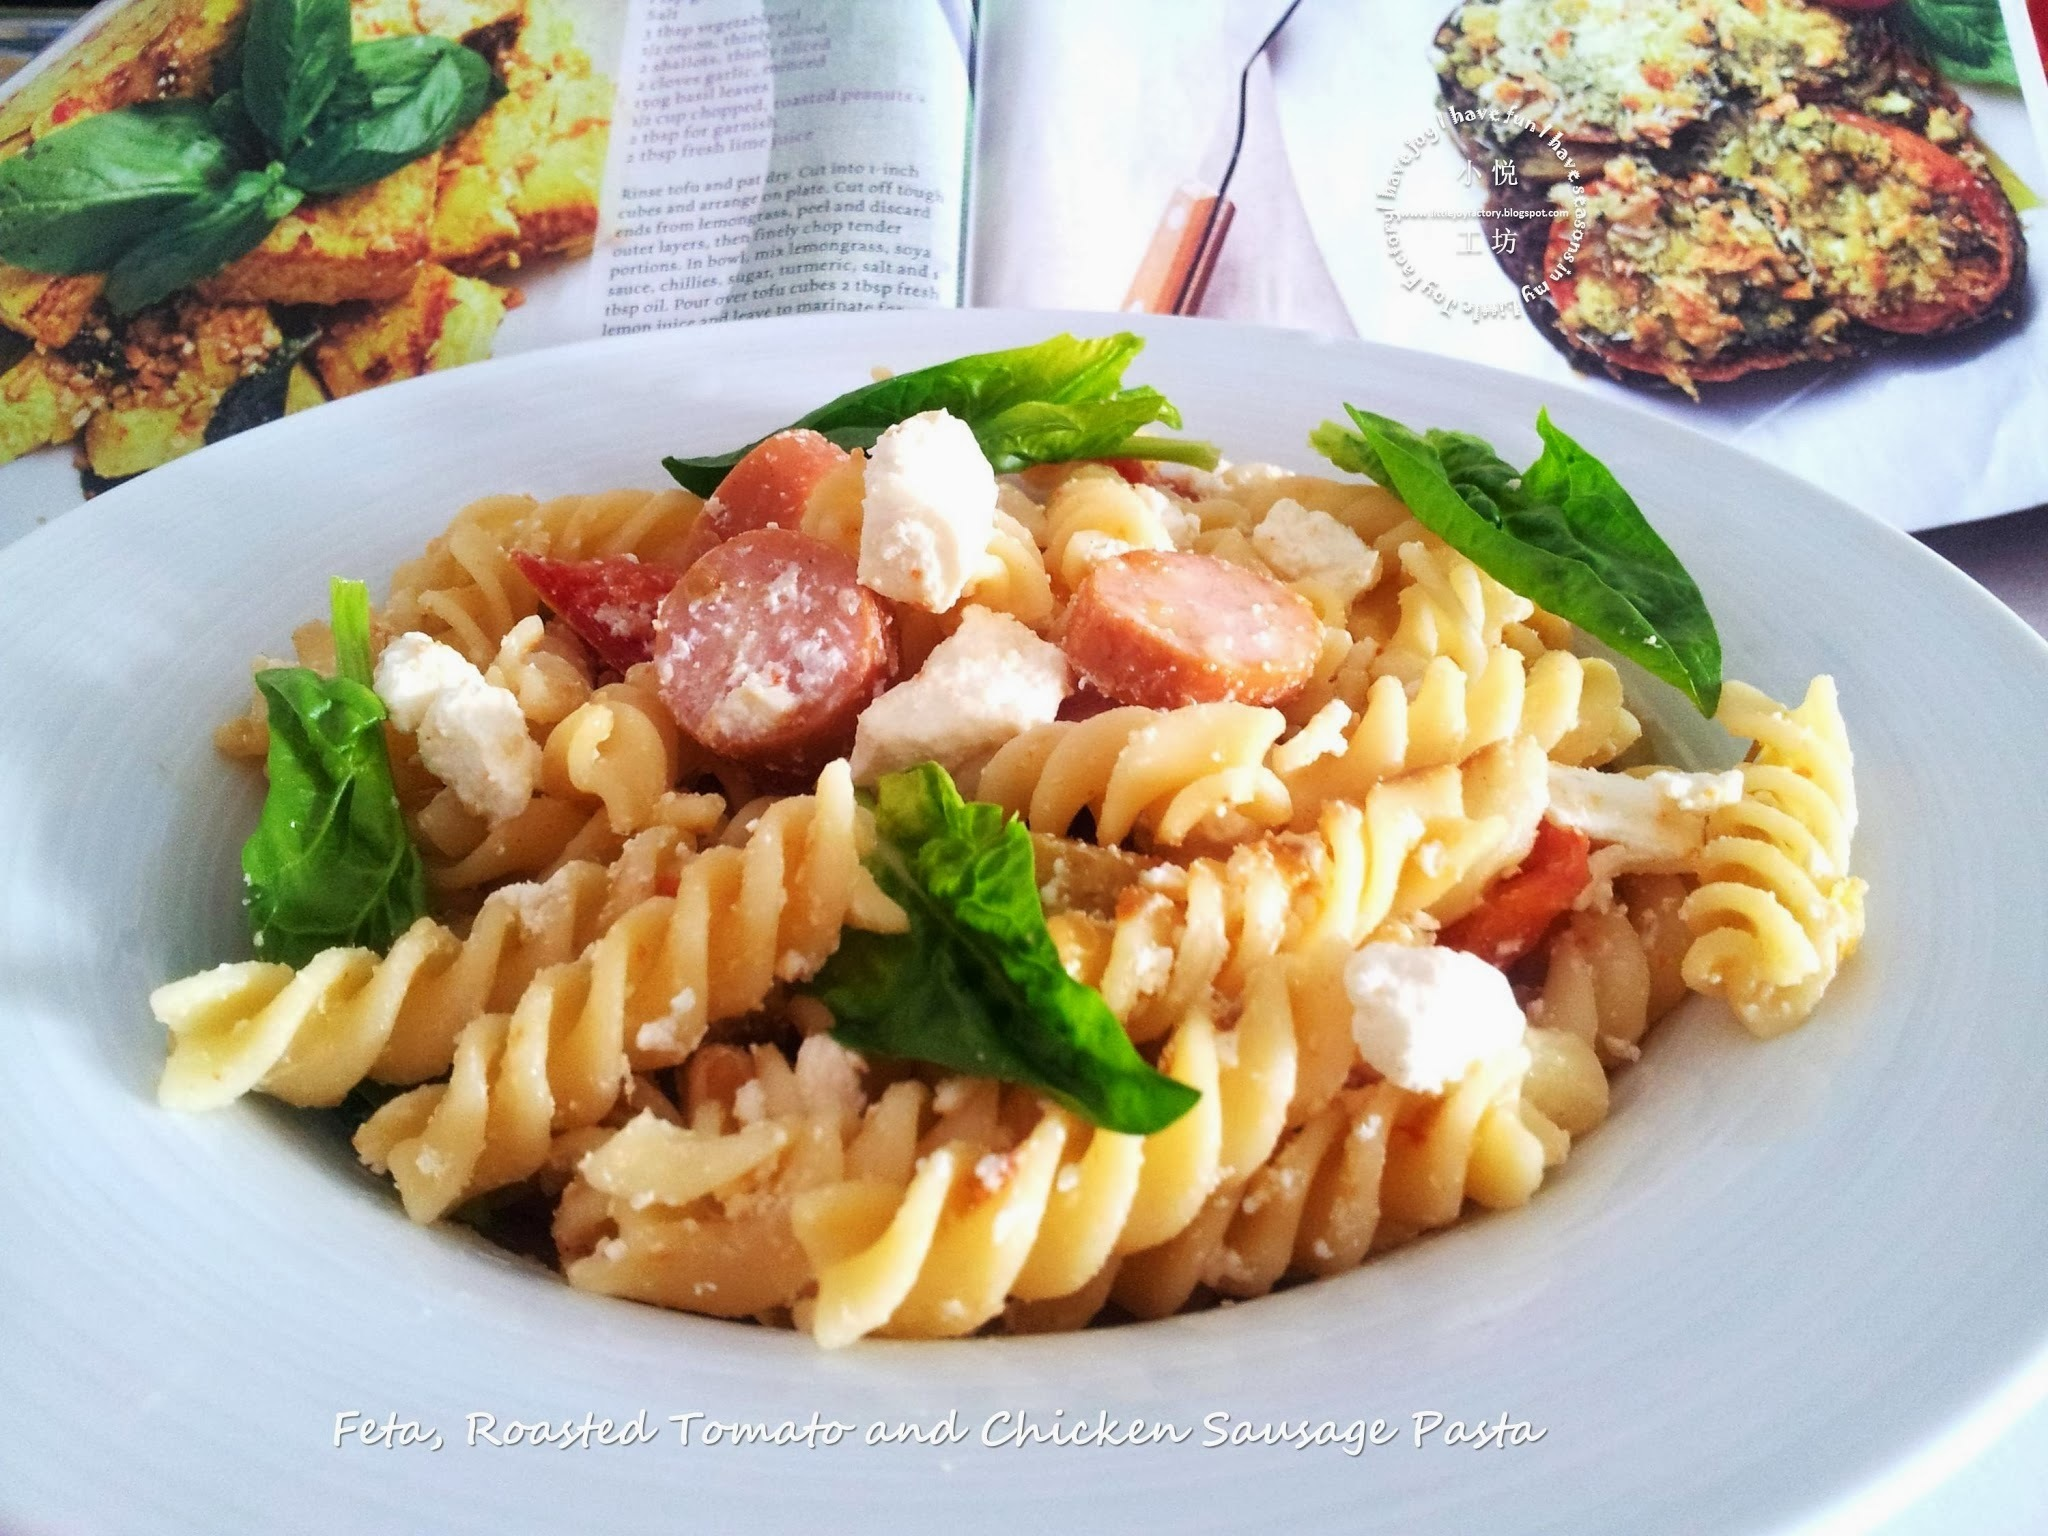 Feta, Roasted Tomato and Chicken Sausage Pasta